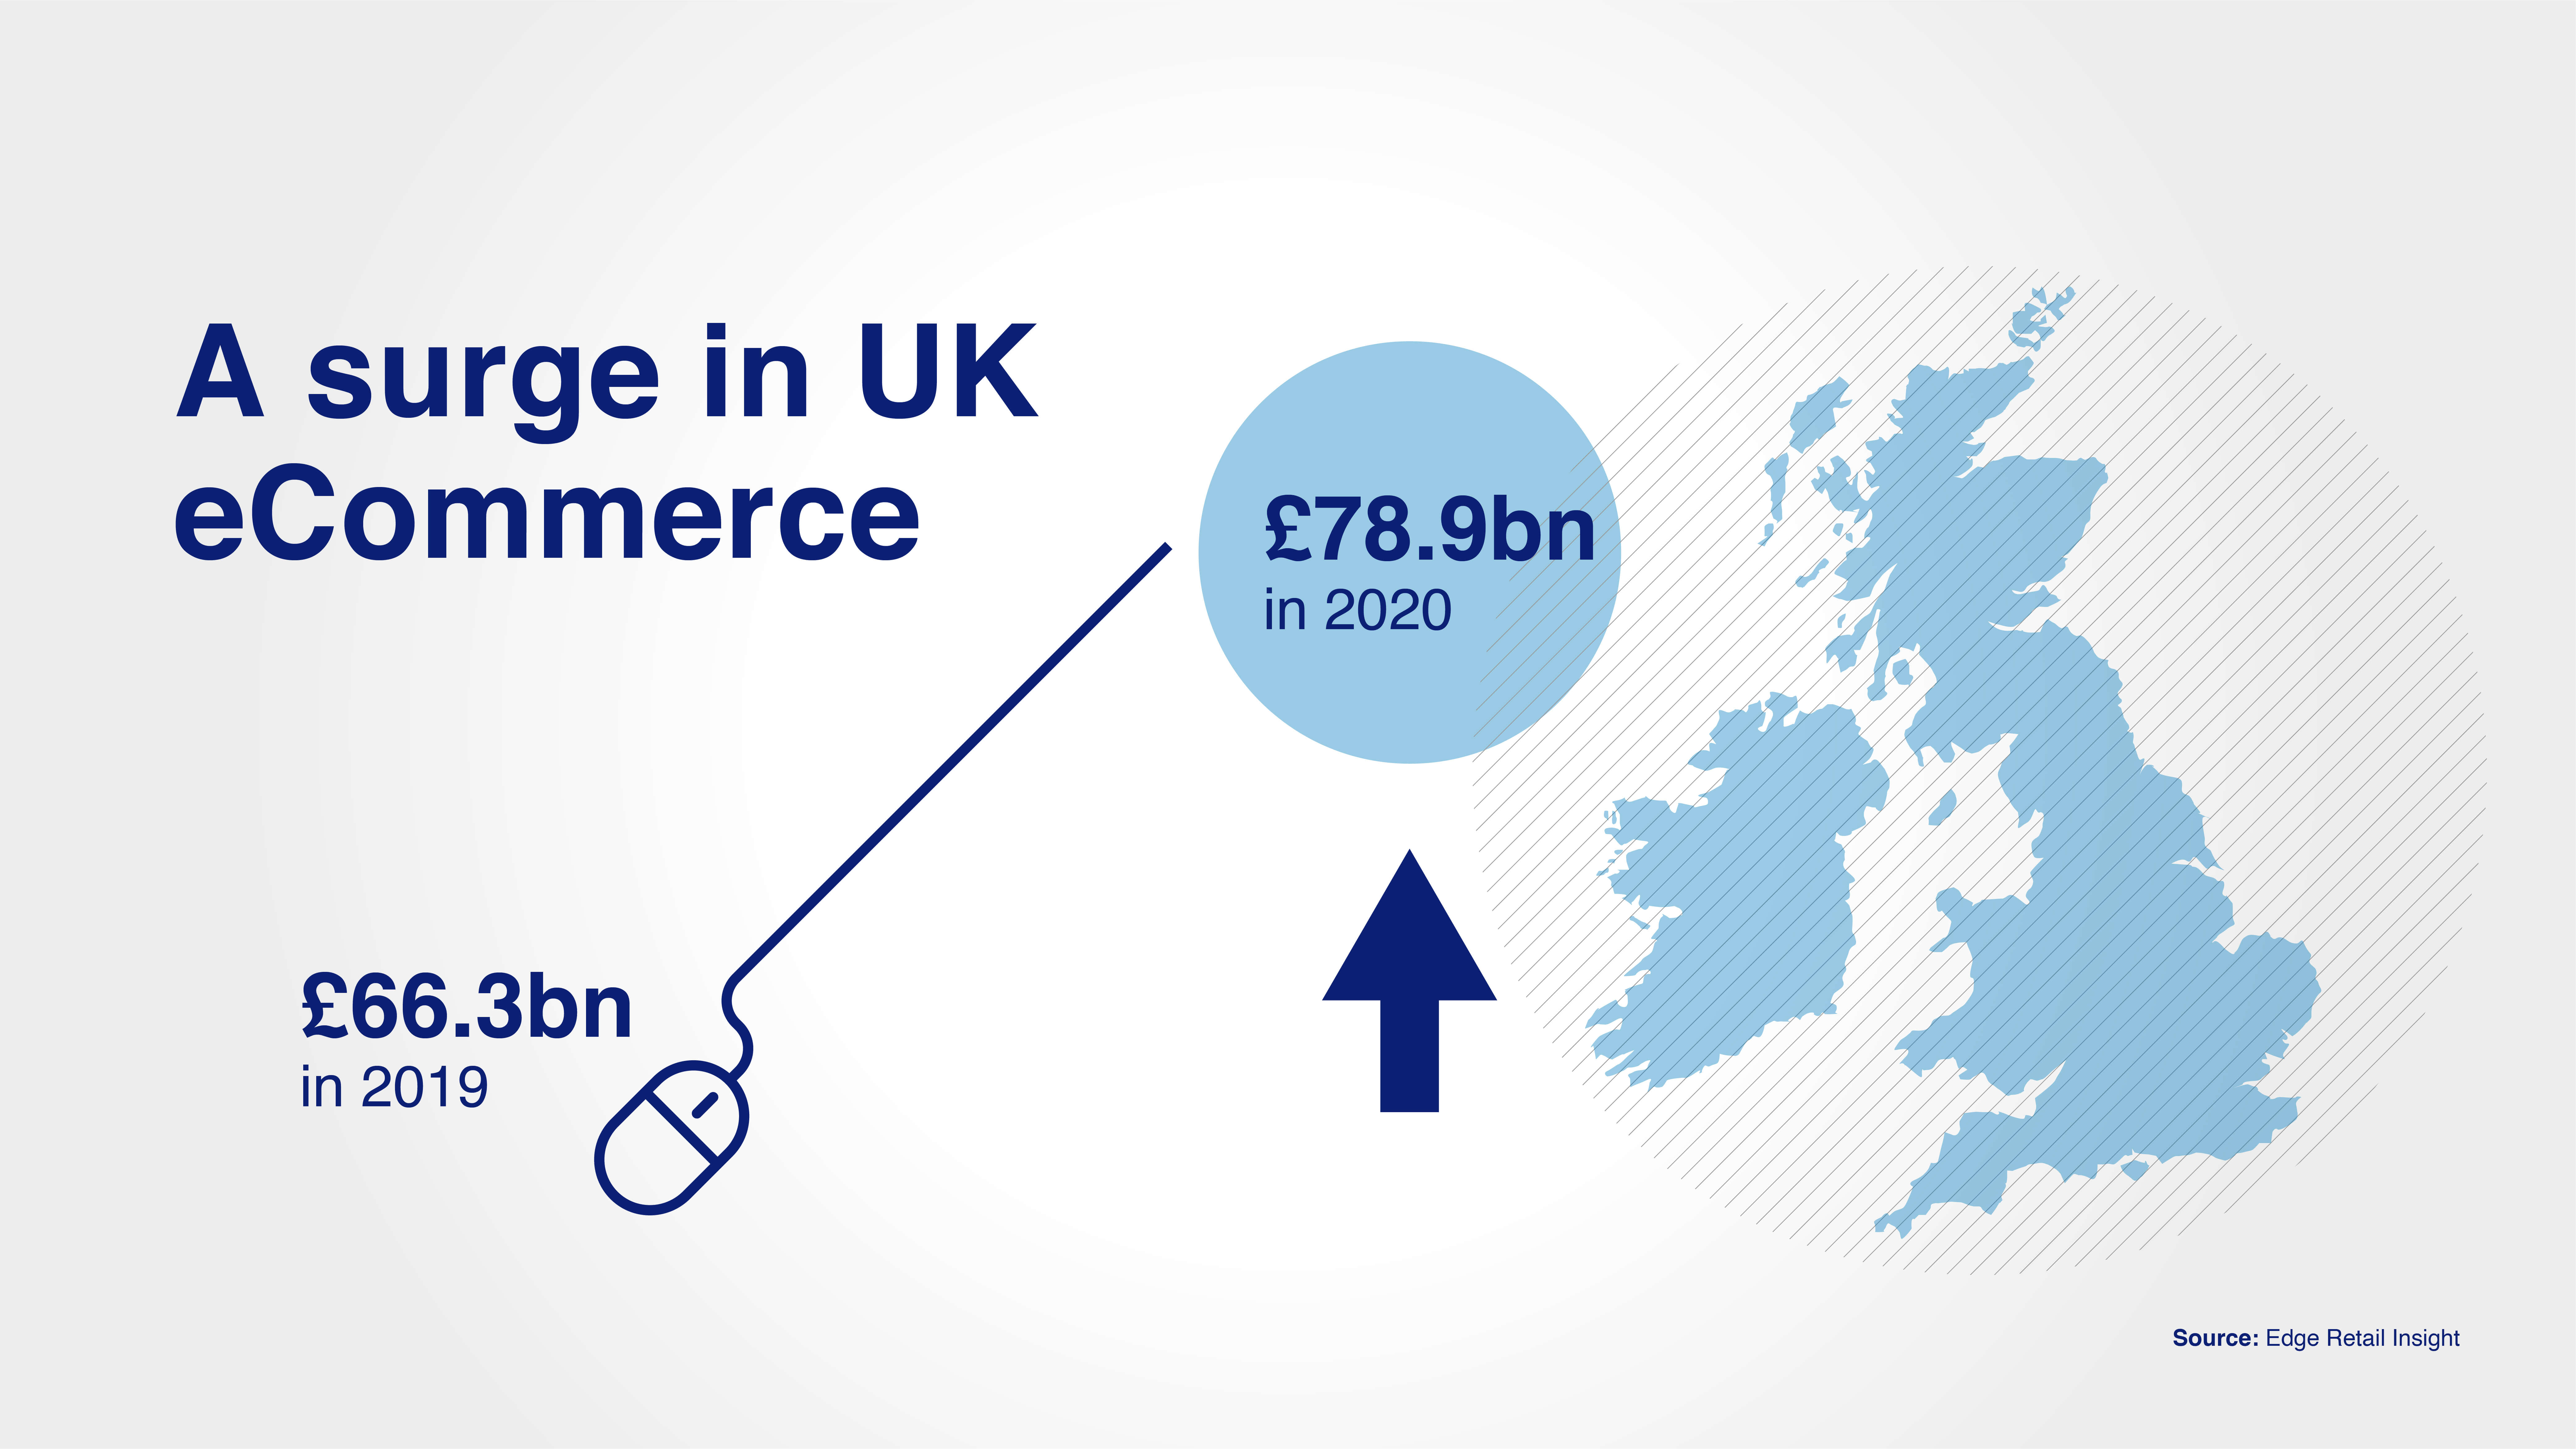 Opayo_Image_1_A surge in eCommerce